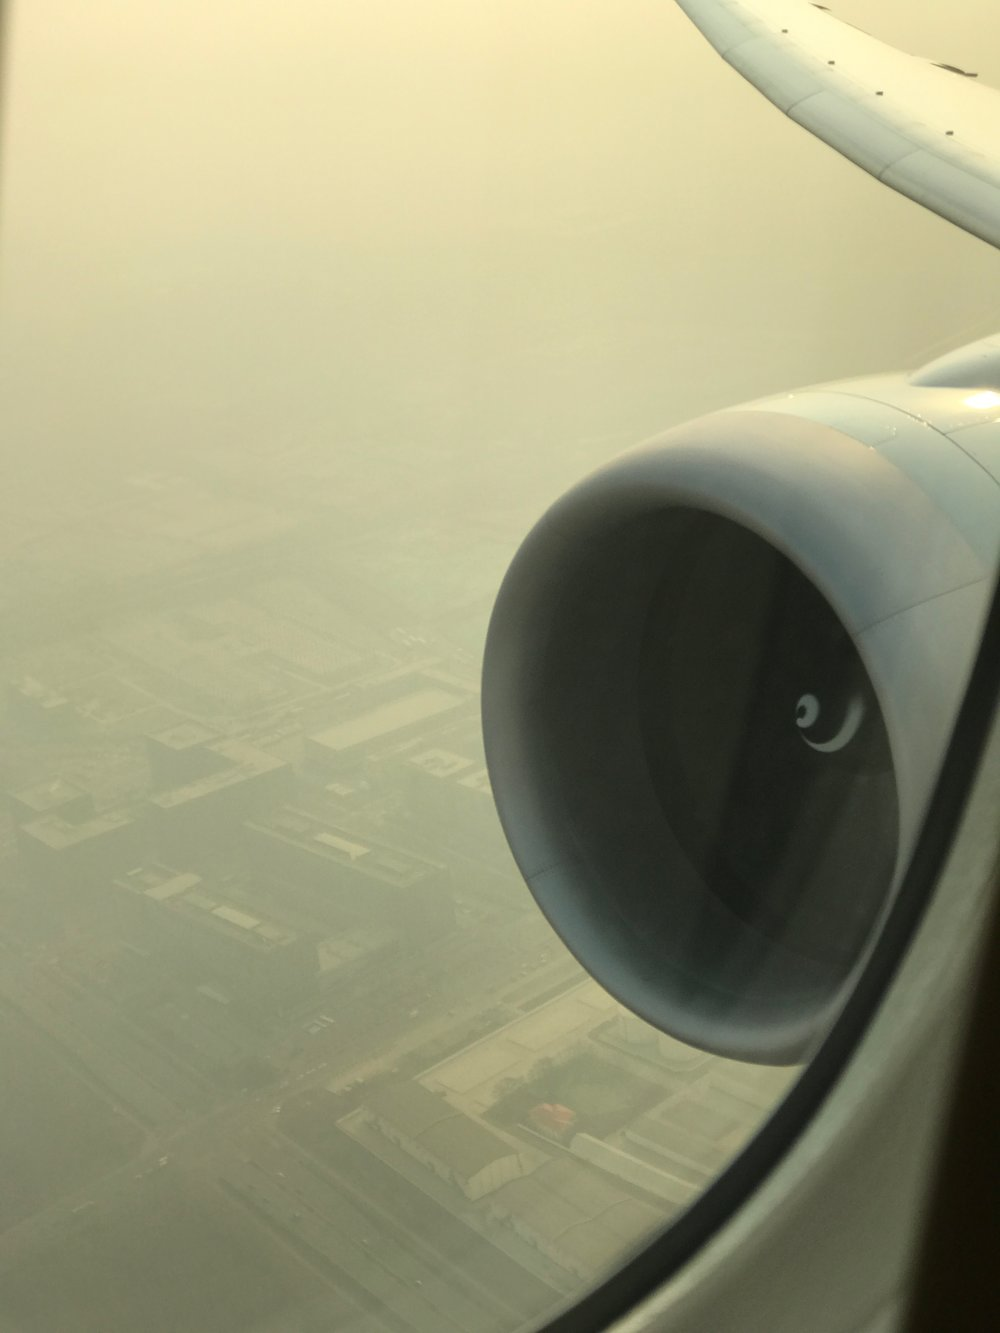 Takeoff through the smog